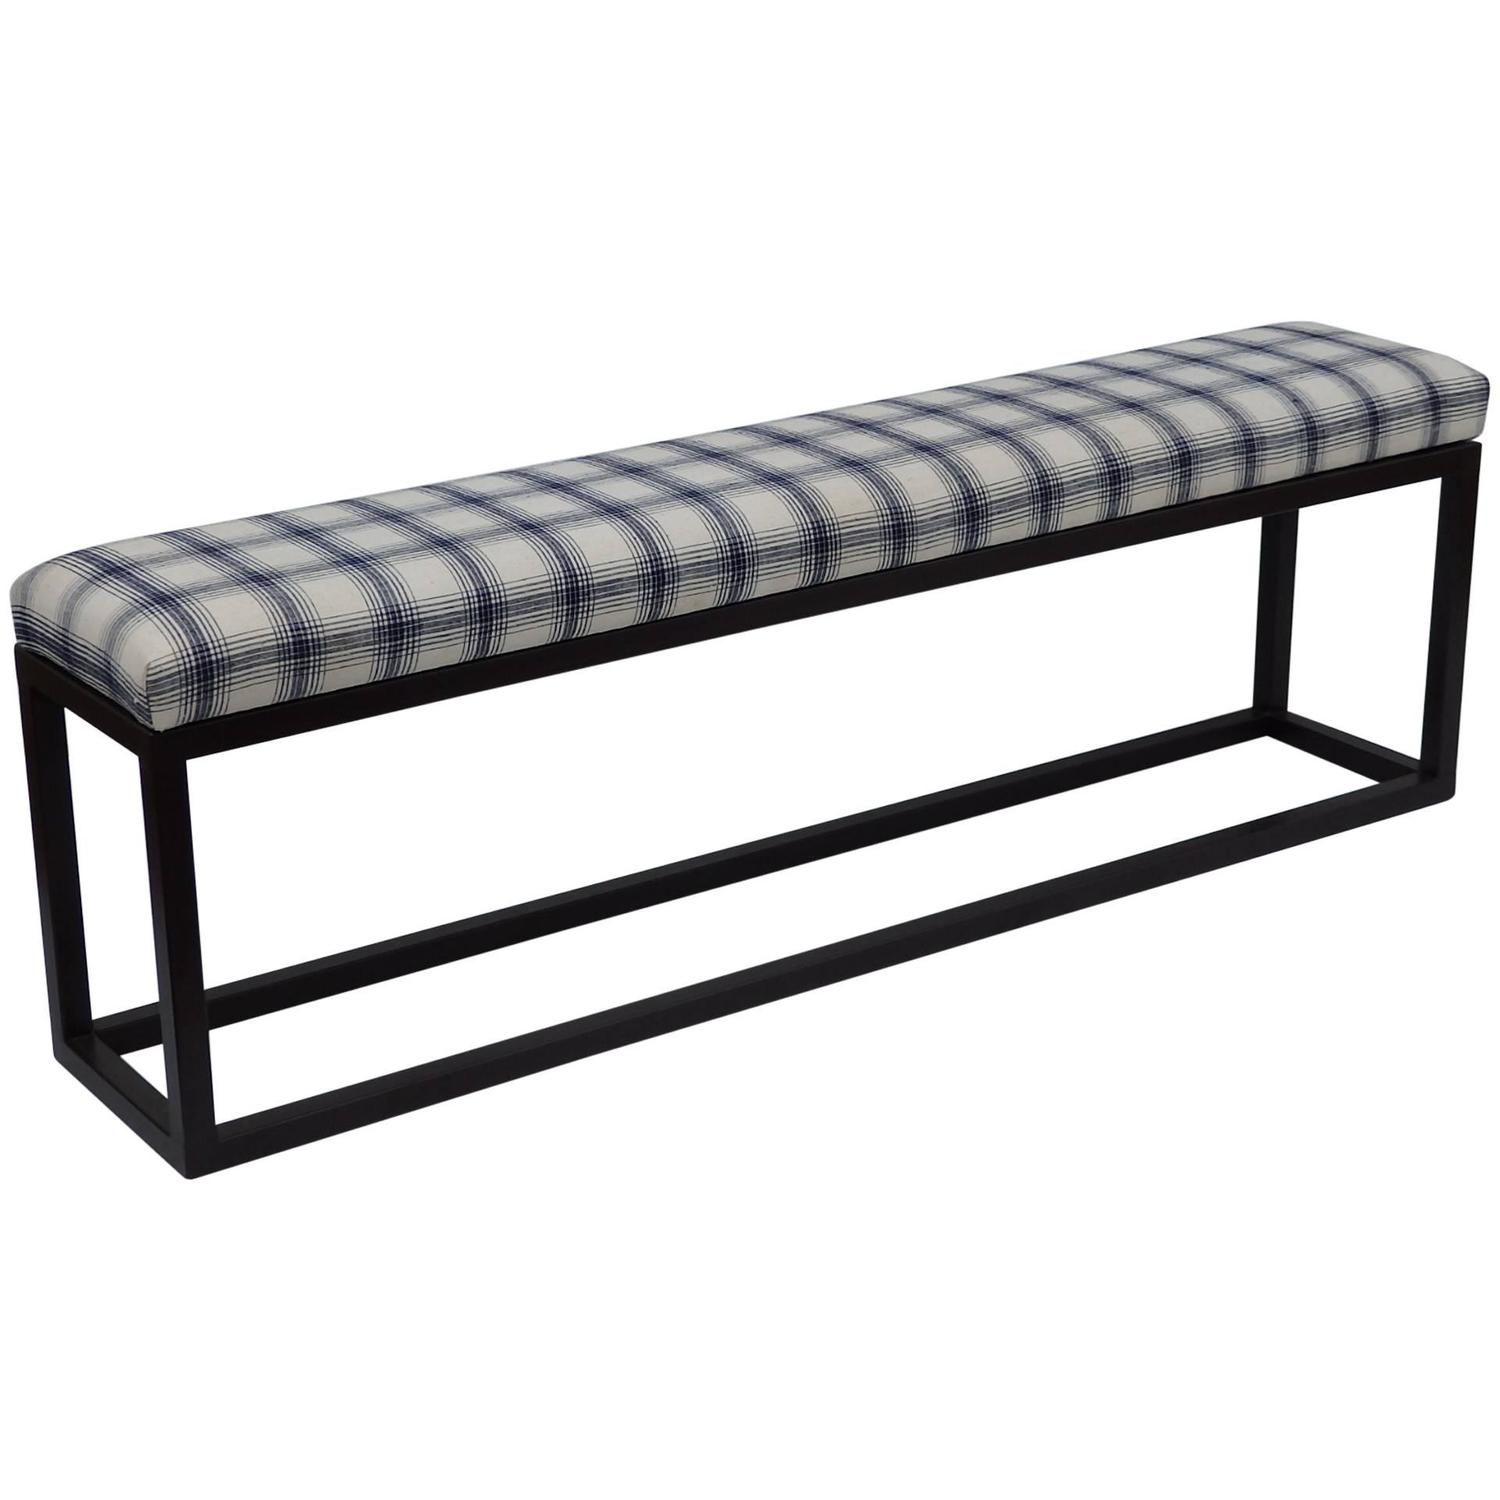 Metal Bench With Vintage Fabric Seat For Sale At 1stdibs